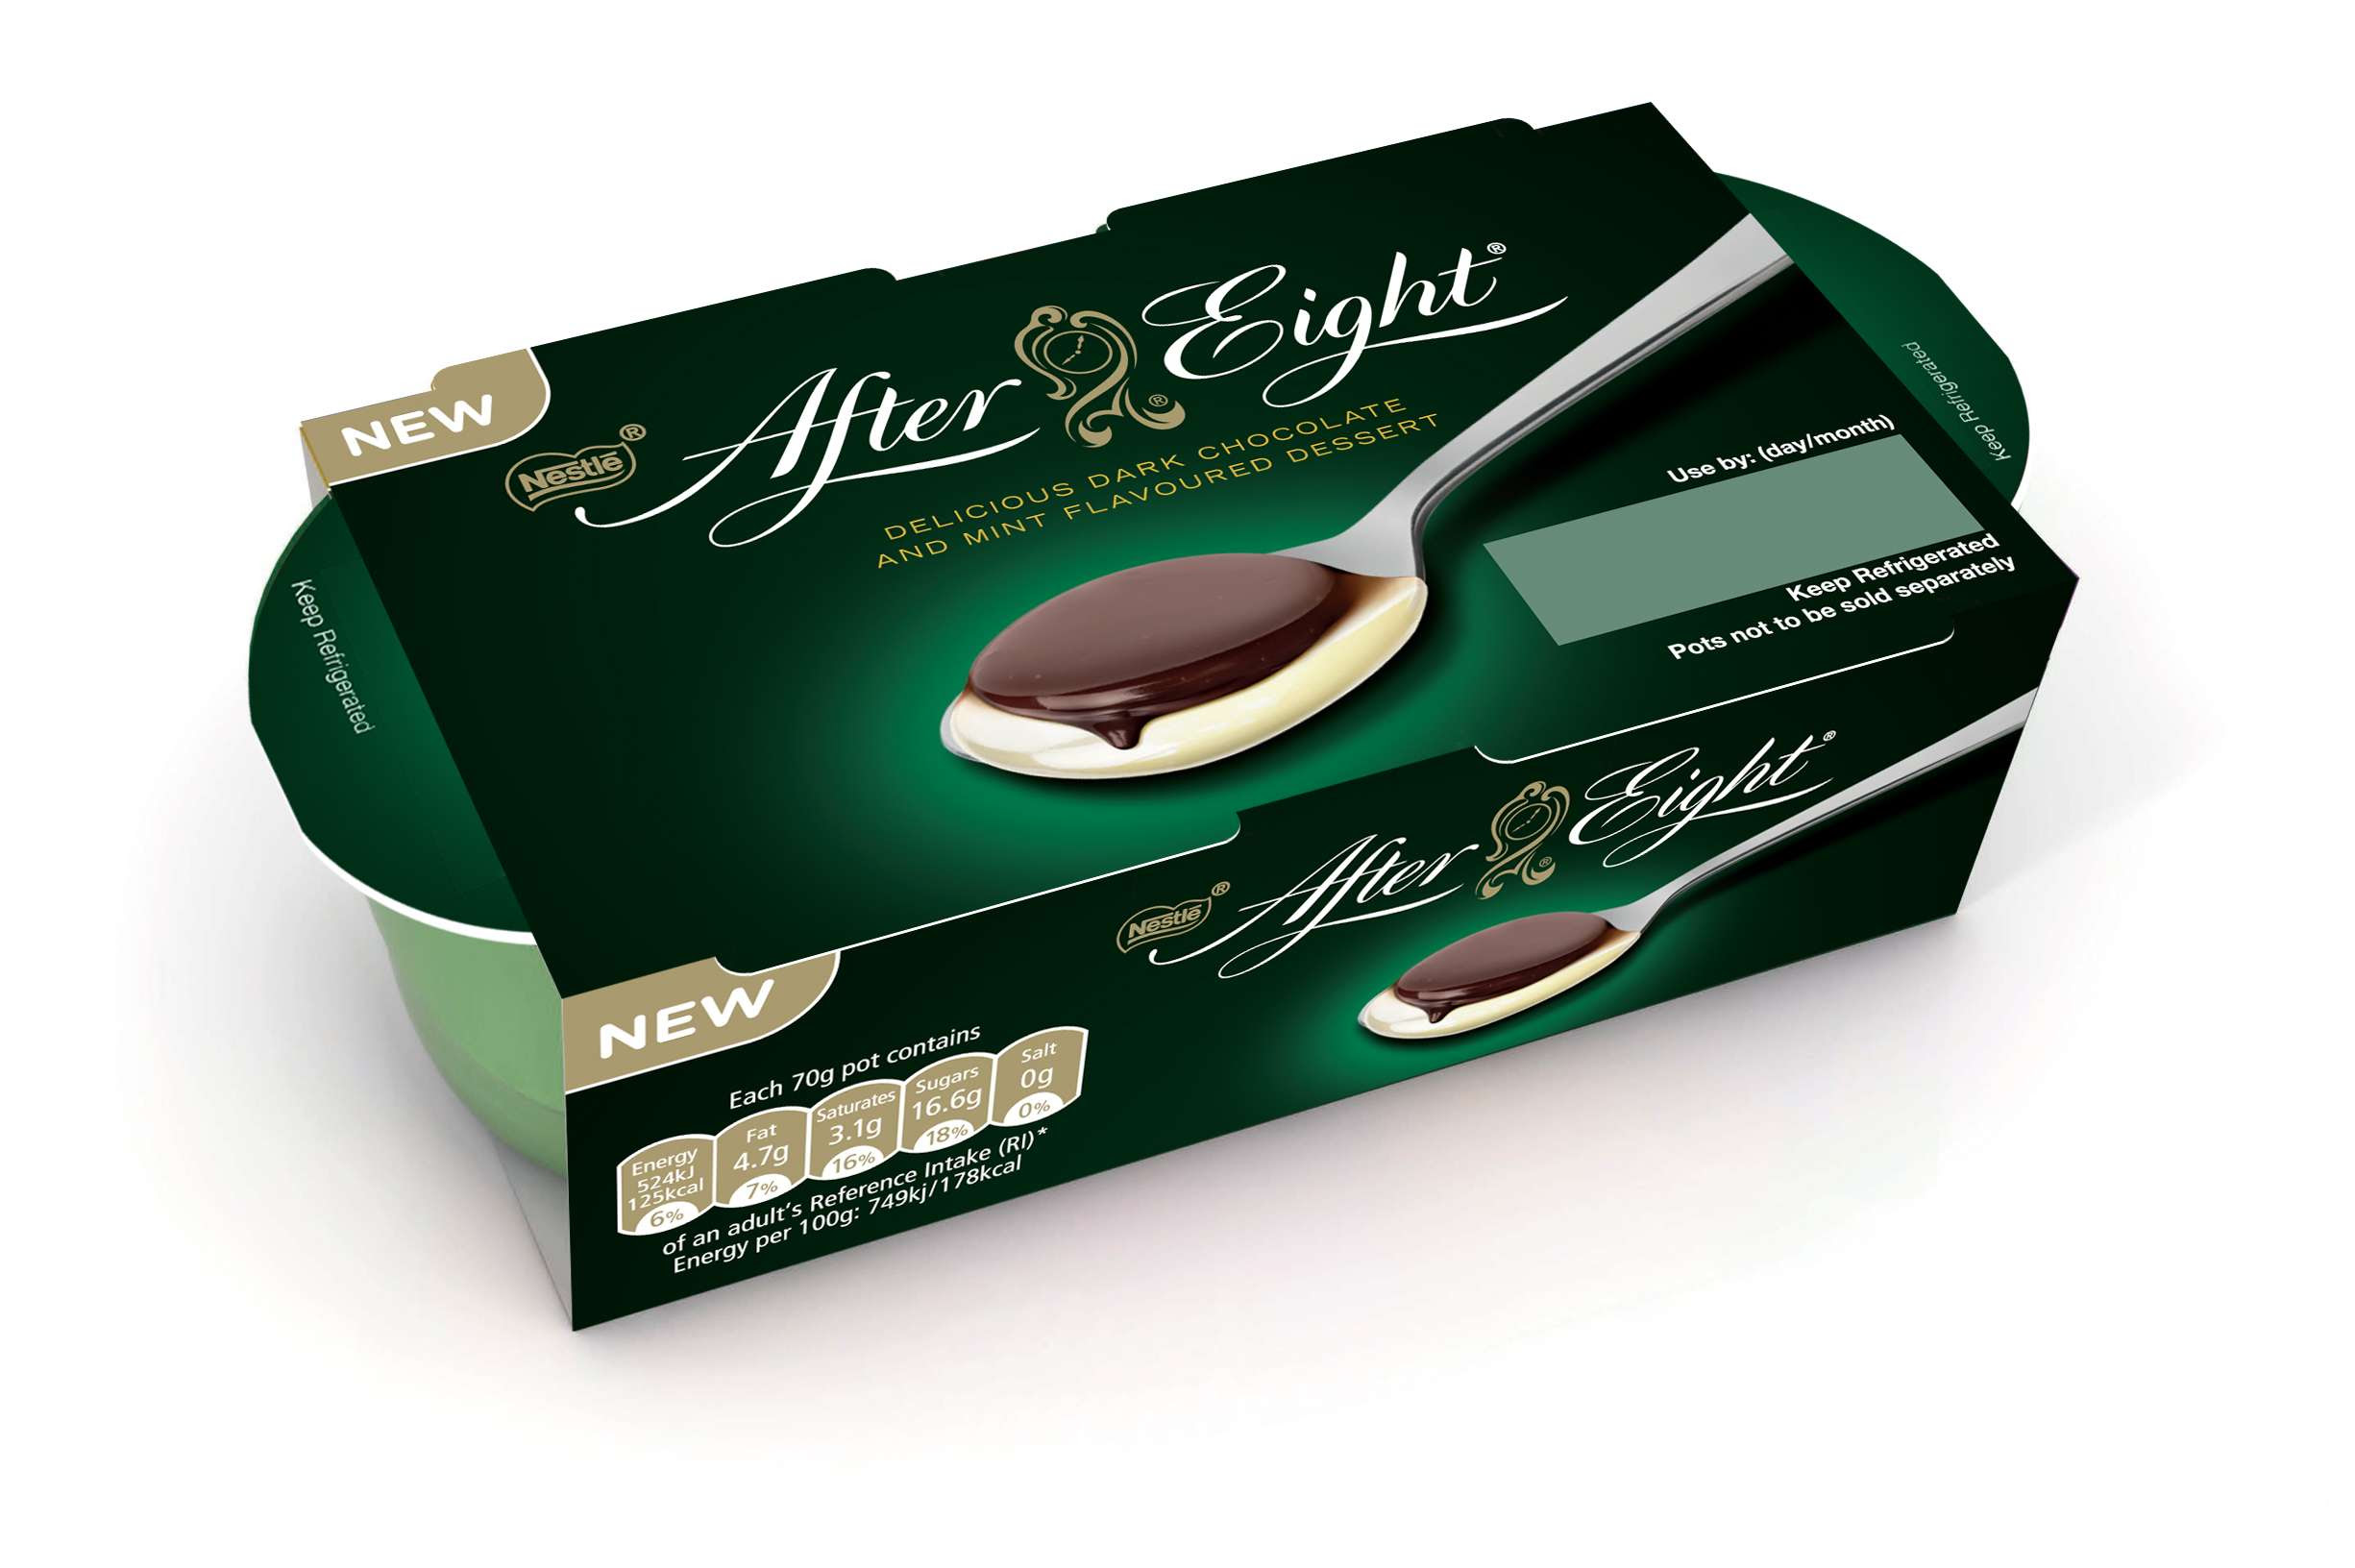 http://d17oljfvfca8.cloudfront.net/wp-content/uploads/sites/8/2013/09/03/nestle-launches-new-after-eight-green-triangle-chocolate-desserts/AfterEight_2pk_3D.jpg